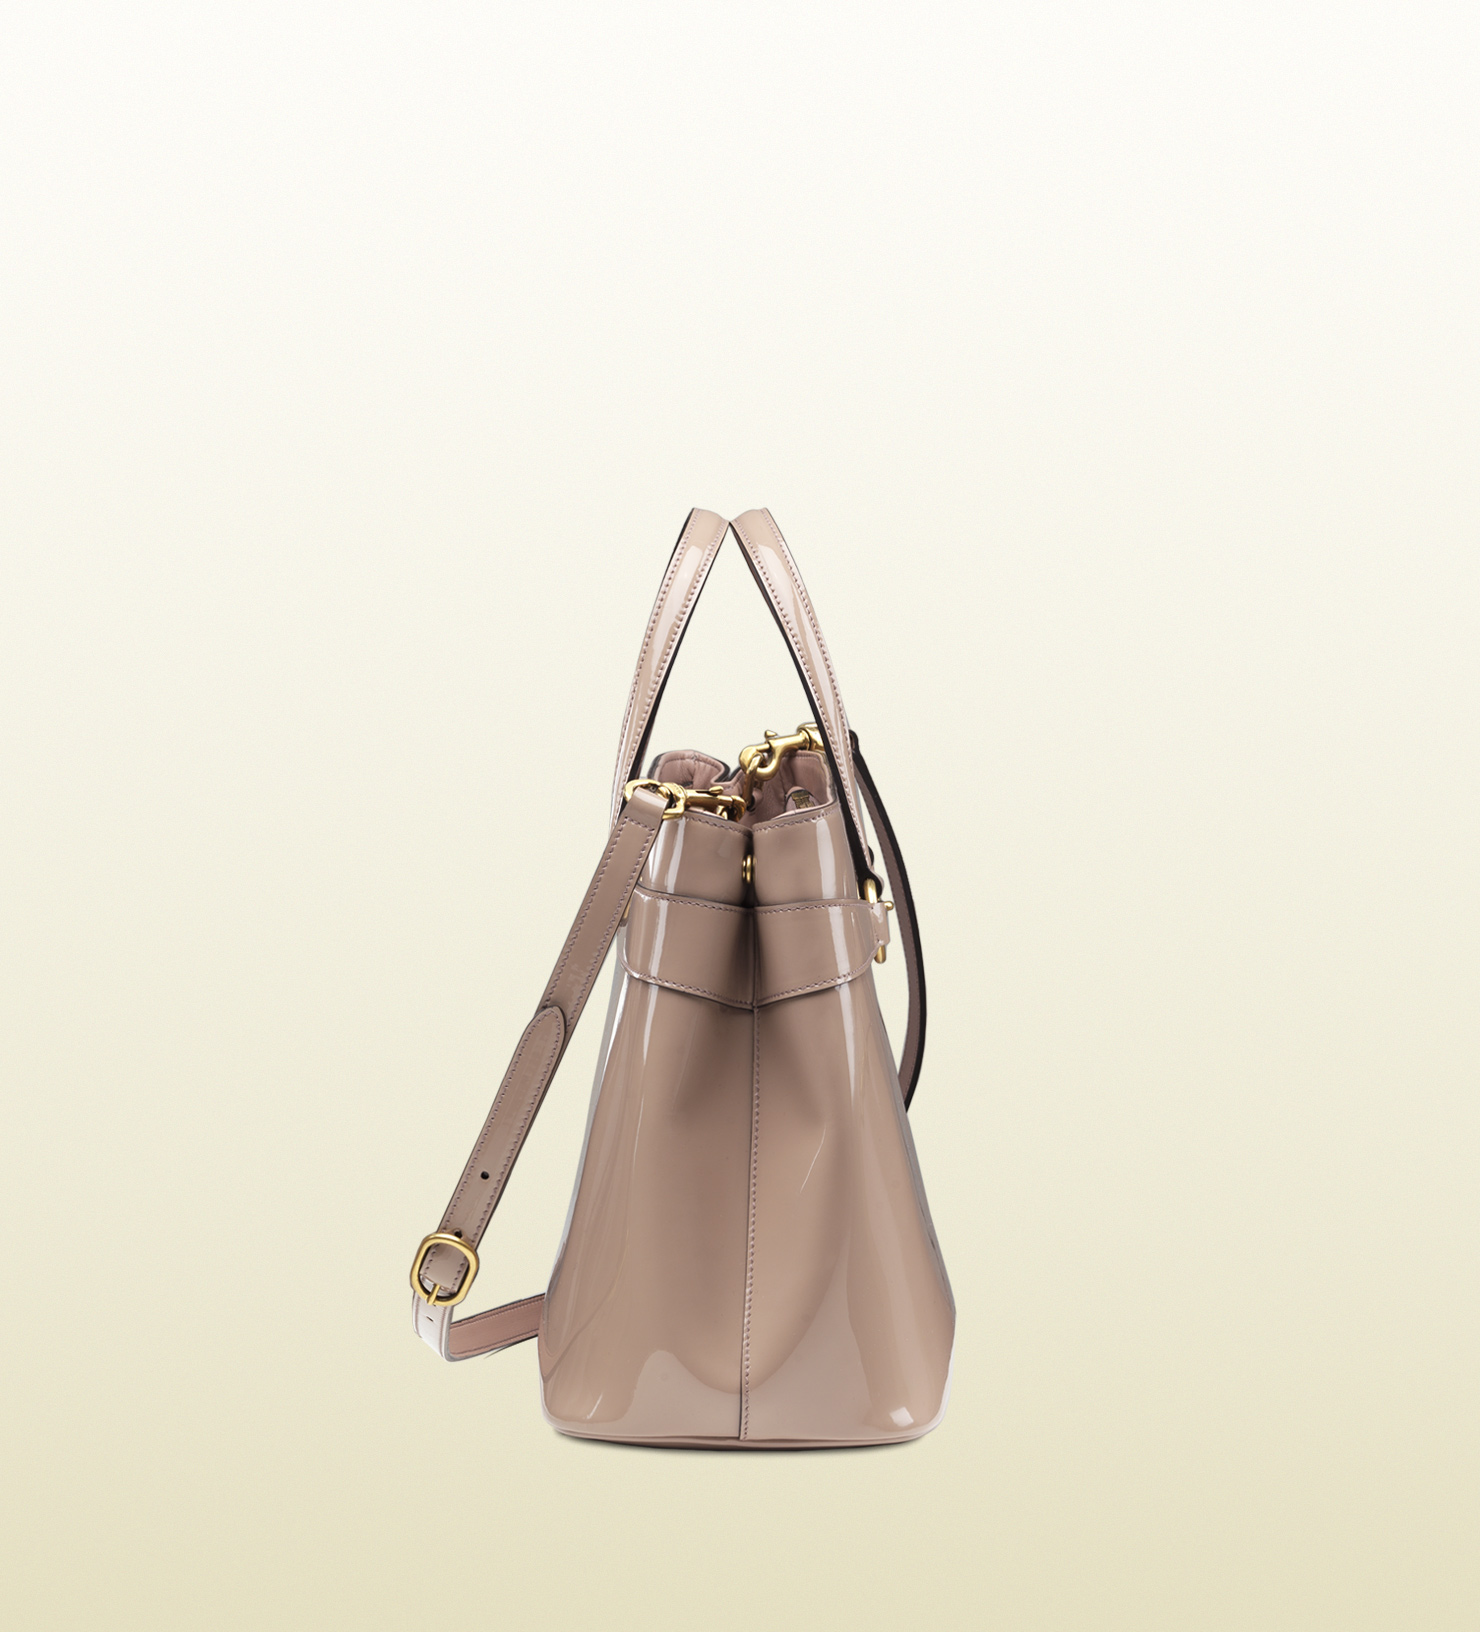 003a28fdae1 Lyst - Gucci Bright Bit Patent Leather Top Handle Bag in Pink